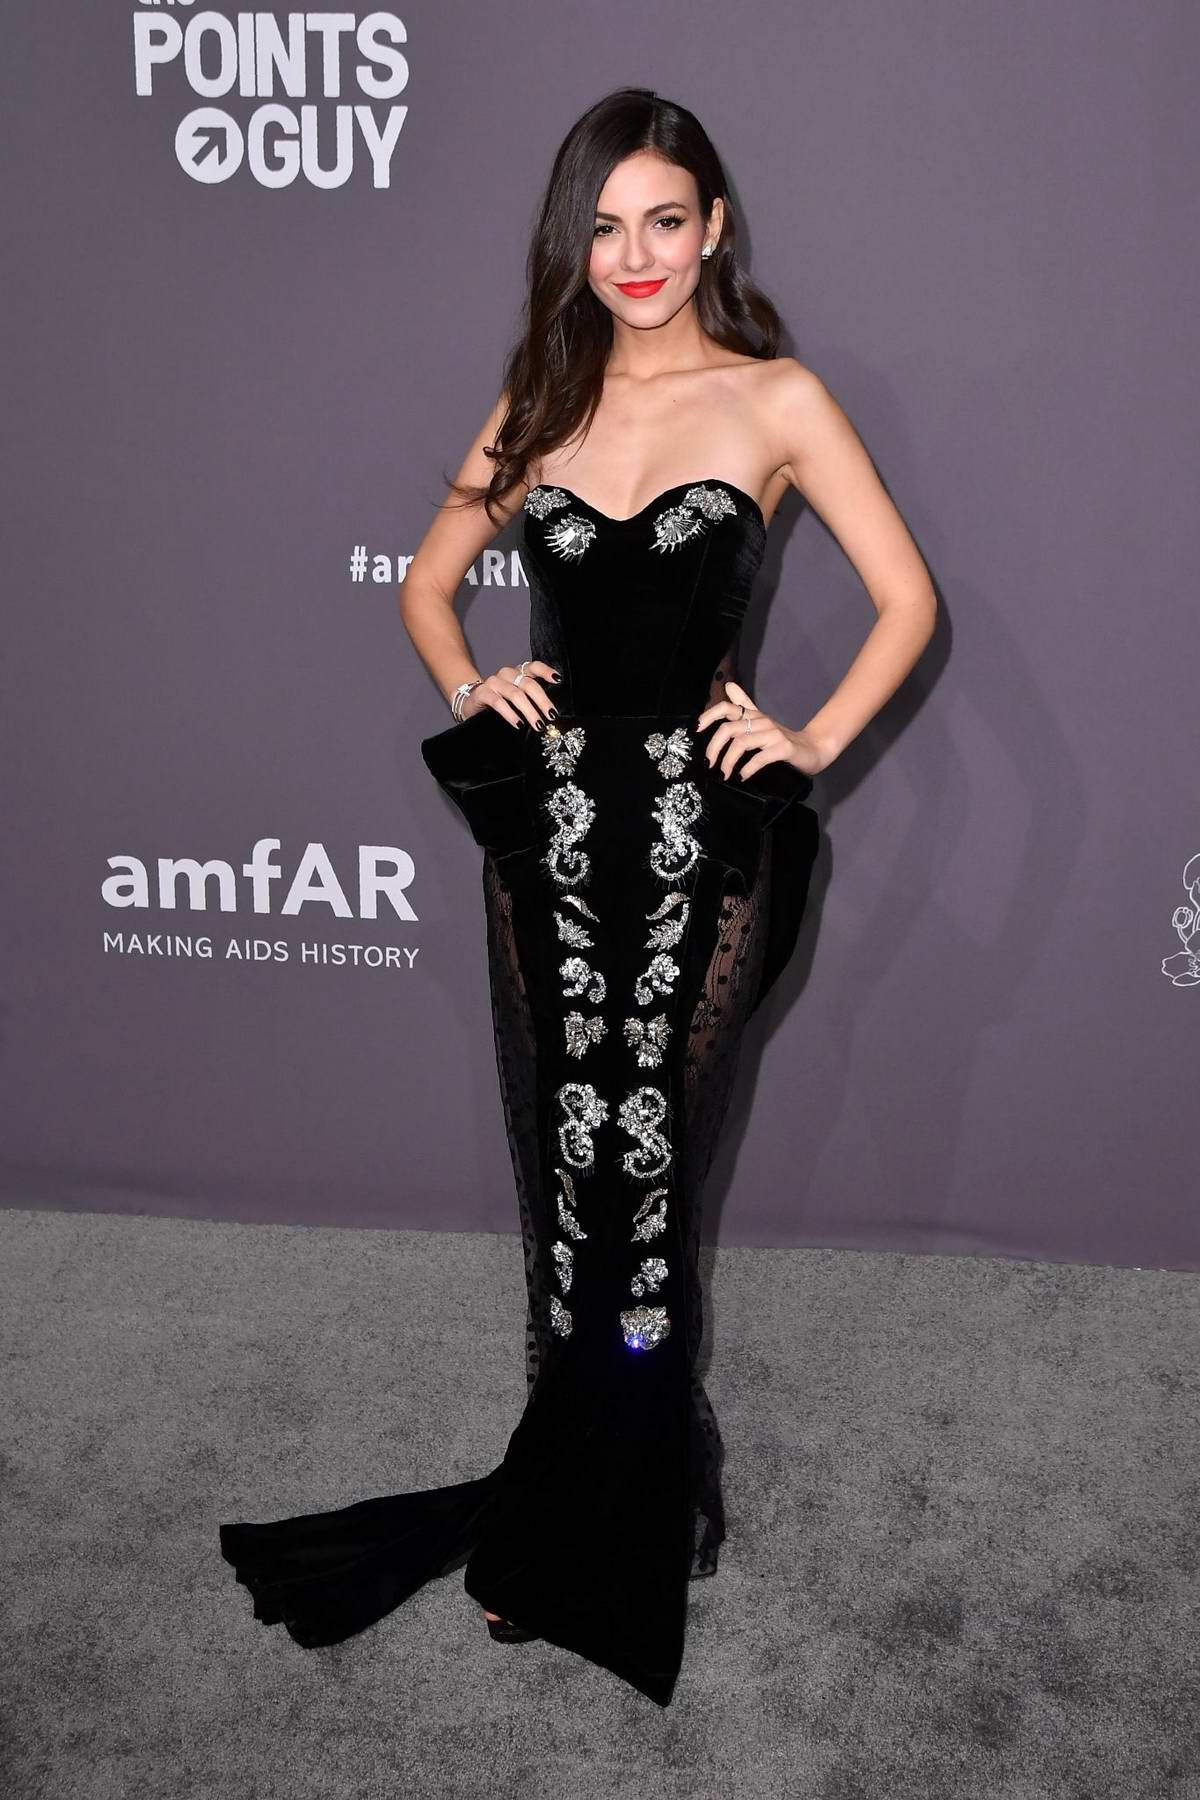 Victoria Justice attends amfAR New York Gala 2019 at Cipriani Wall Street in New York City